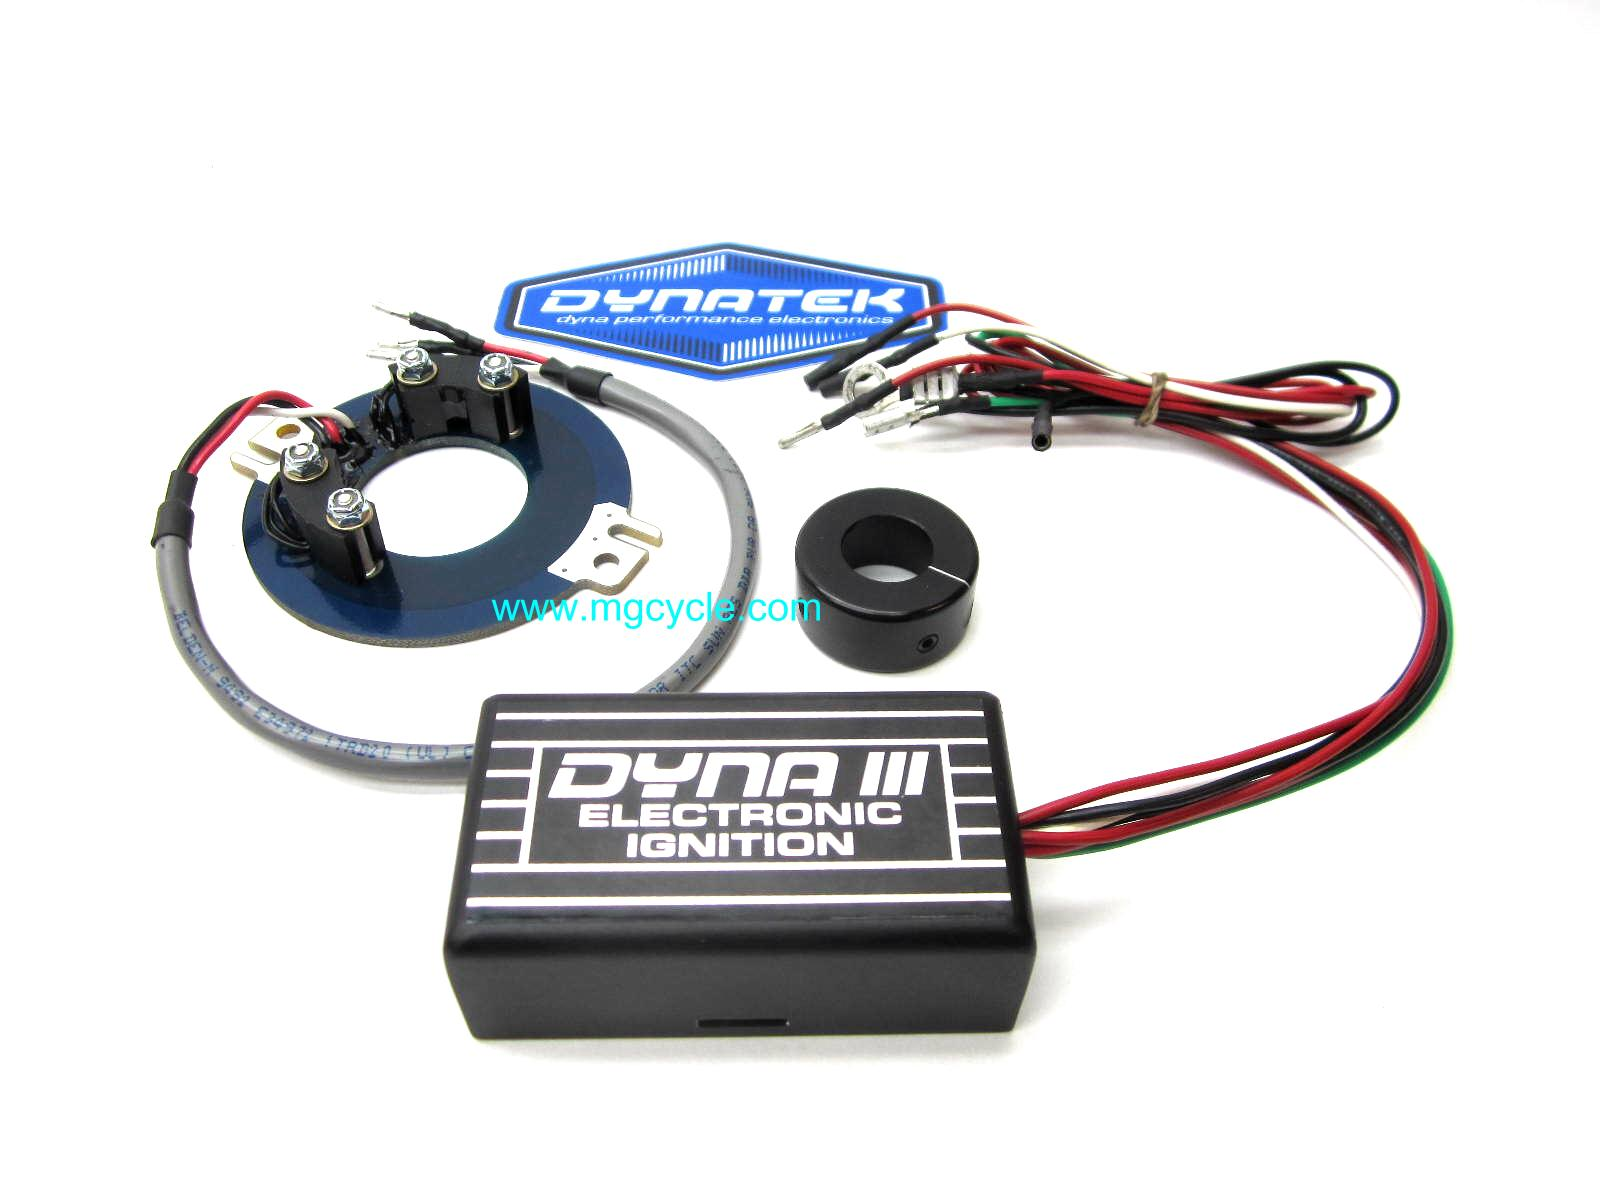 DYNA III electronic ignition, twin point big twins